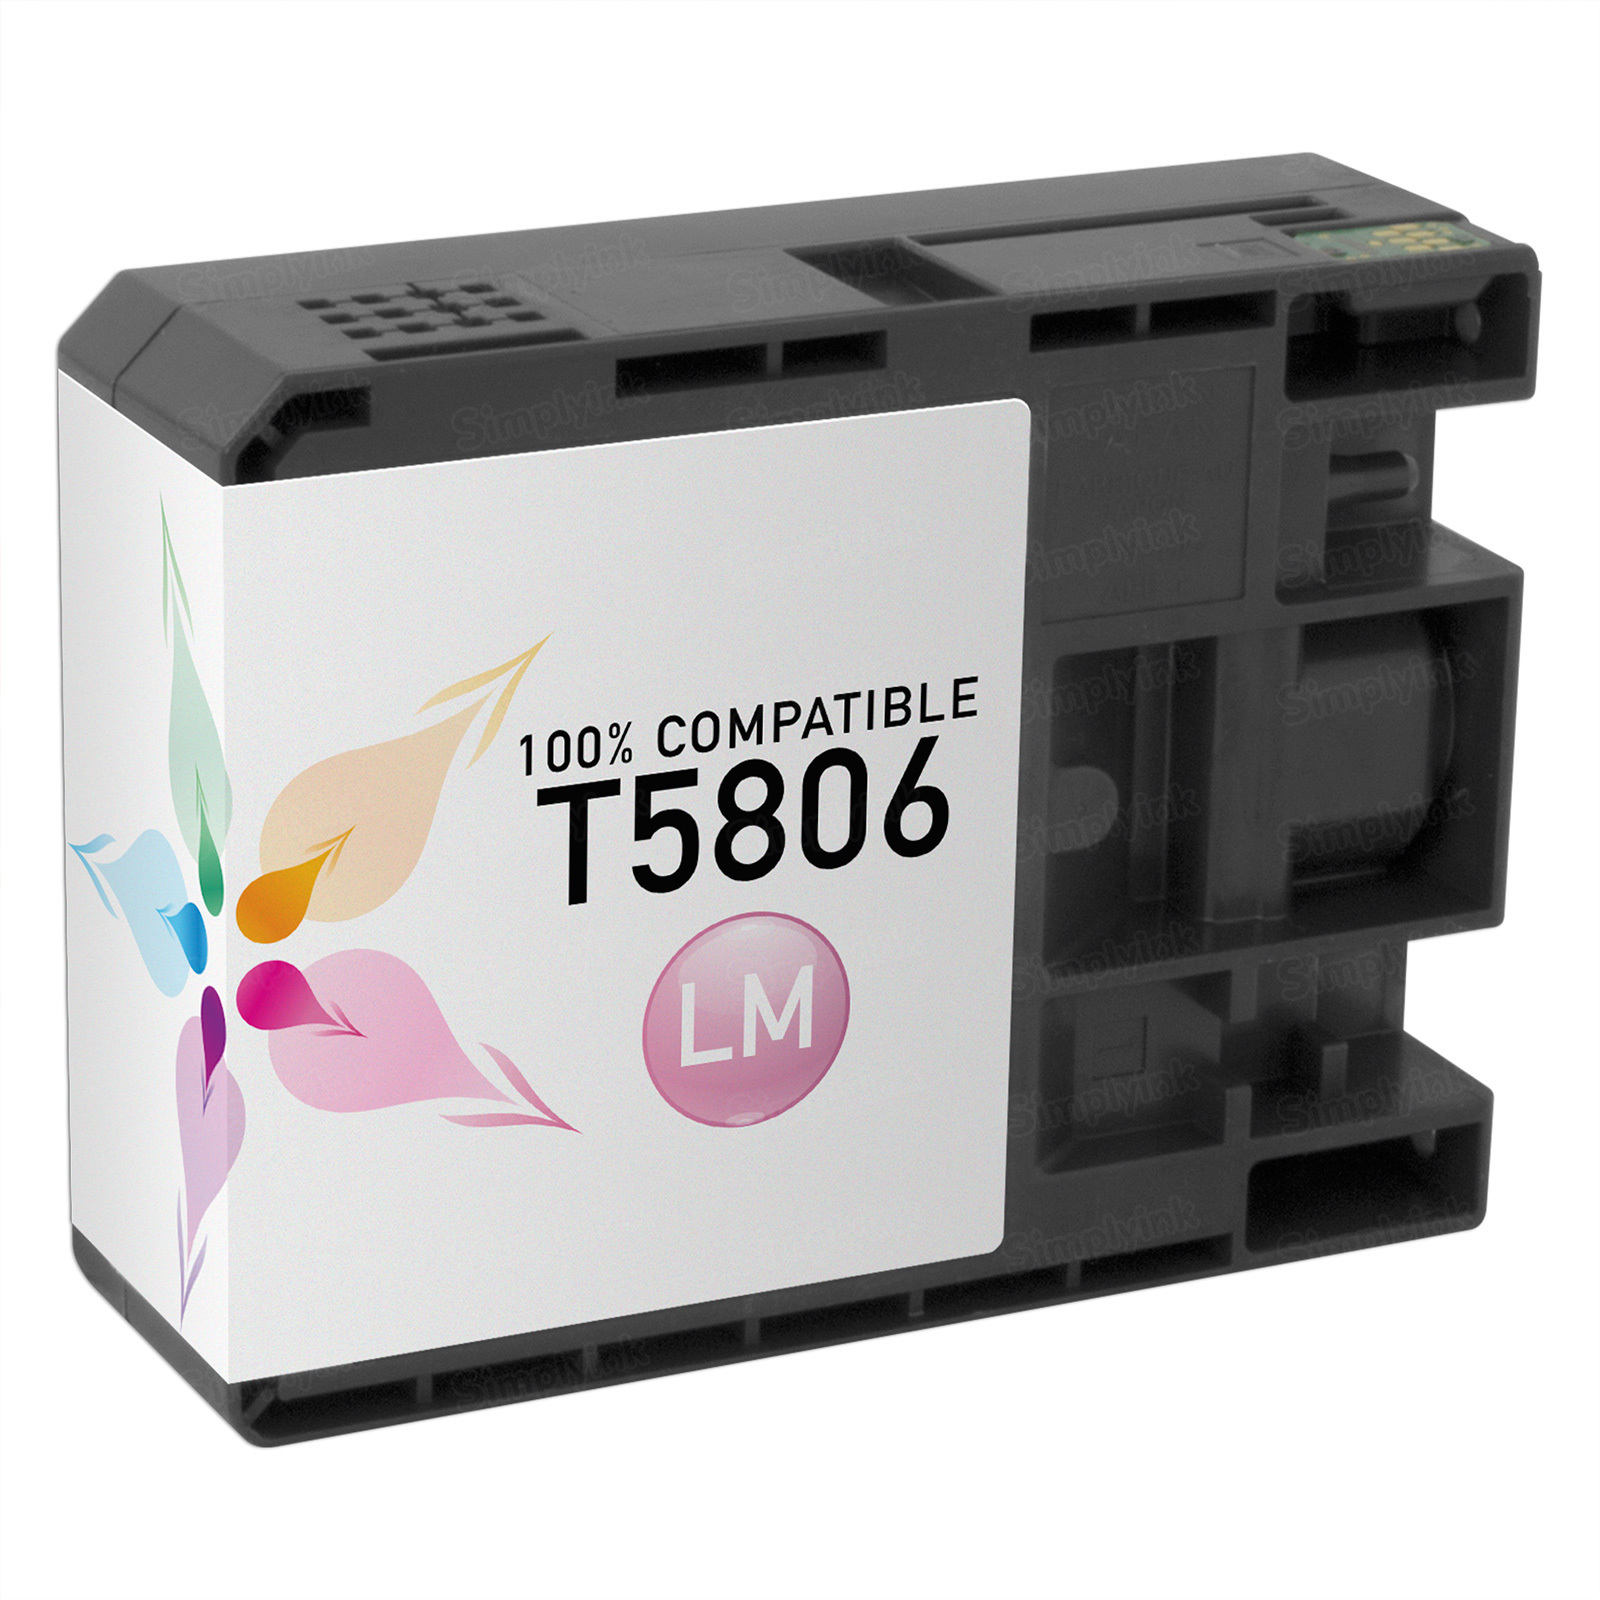 Epson Compatible T580600 Light Magenta Inkjet Cartridge for the Stylus Pro 3800